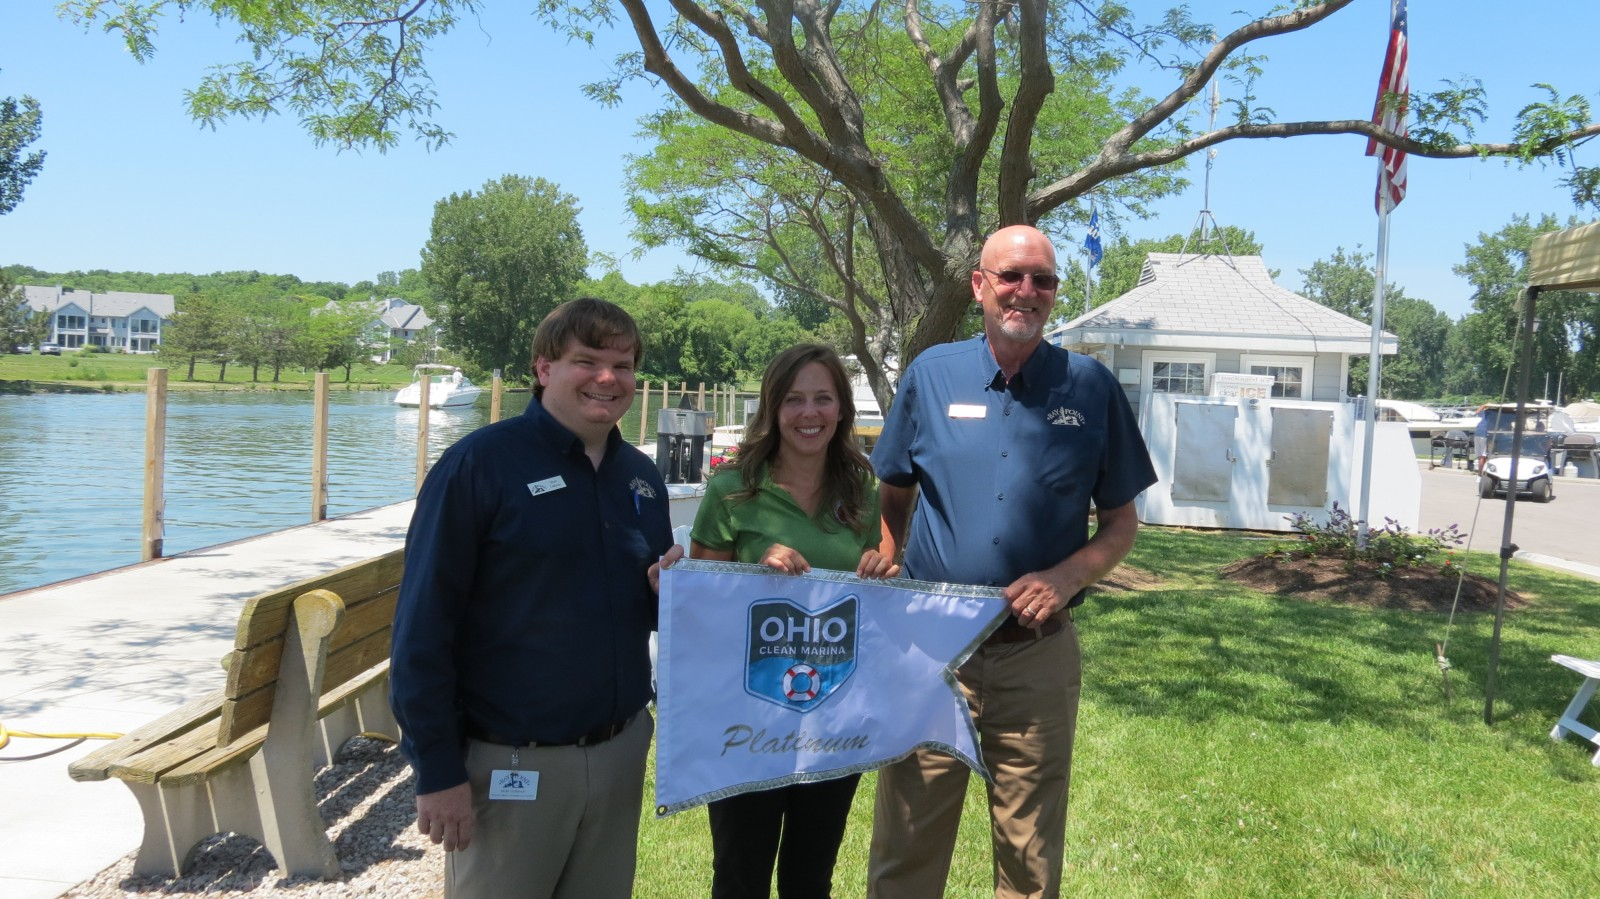 Bay Point Marina Becomes Ohio's First Platinum Clean Marina